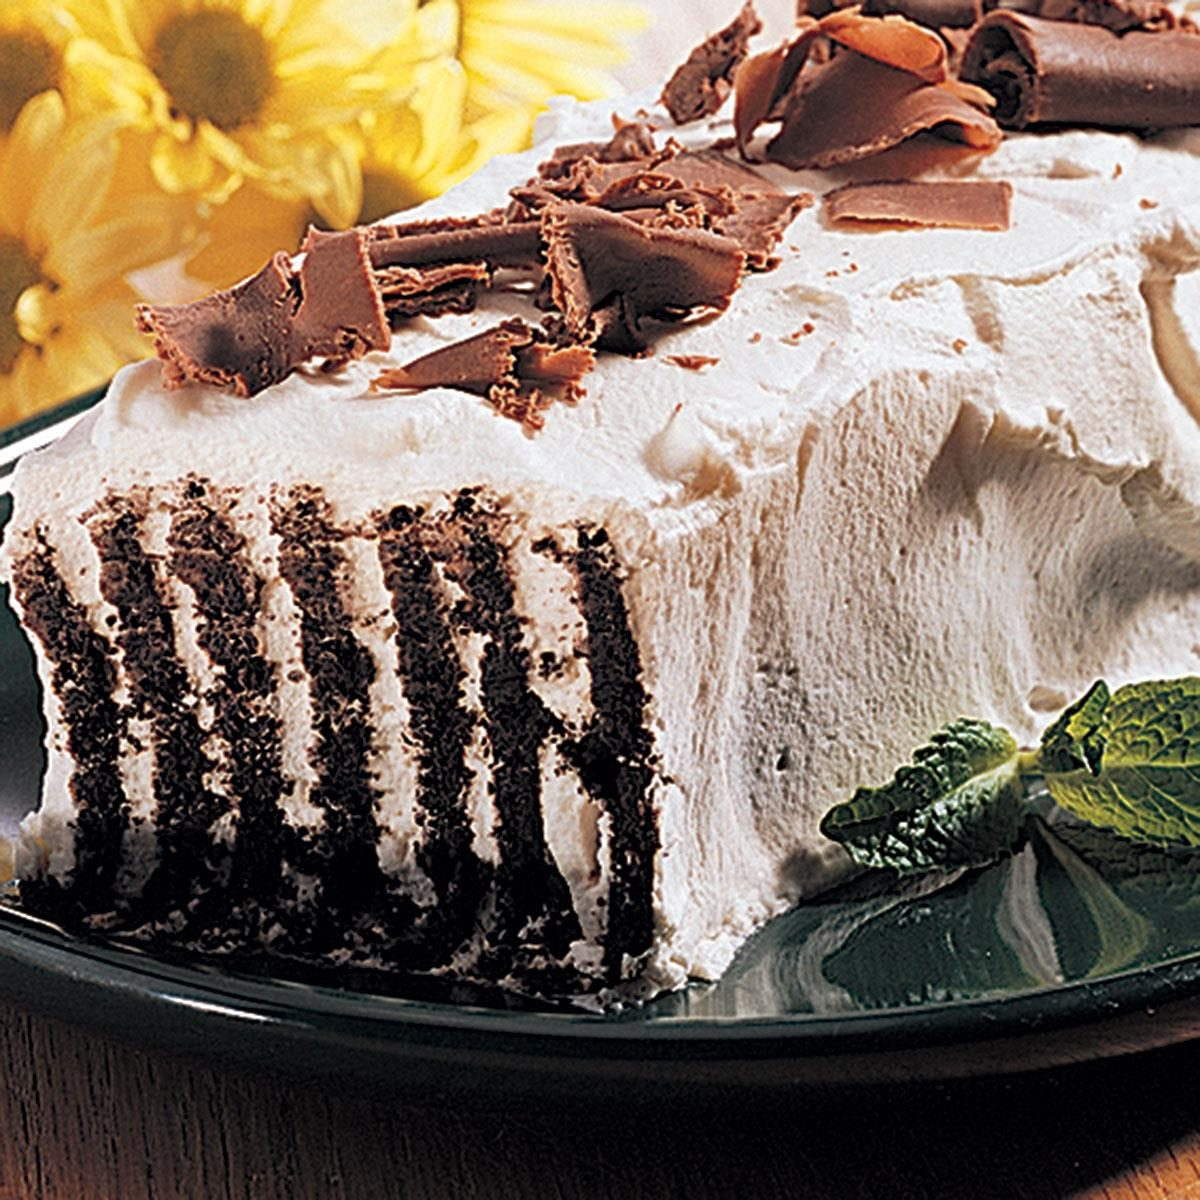 Icebox Cake Recipe | Taste of Home